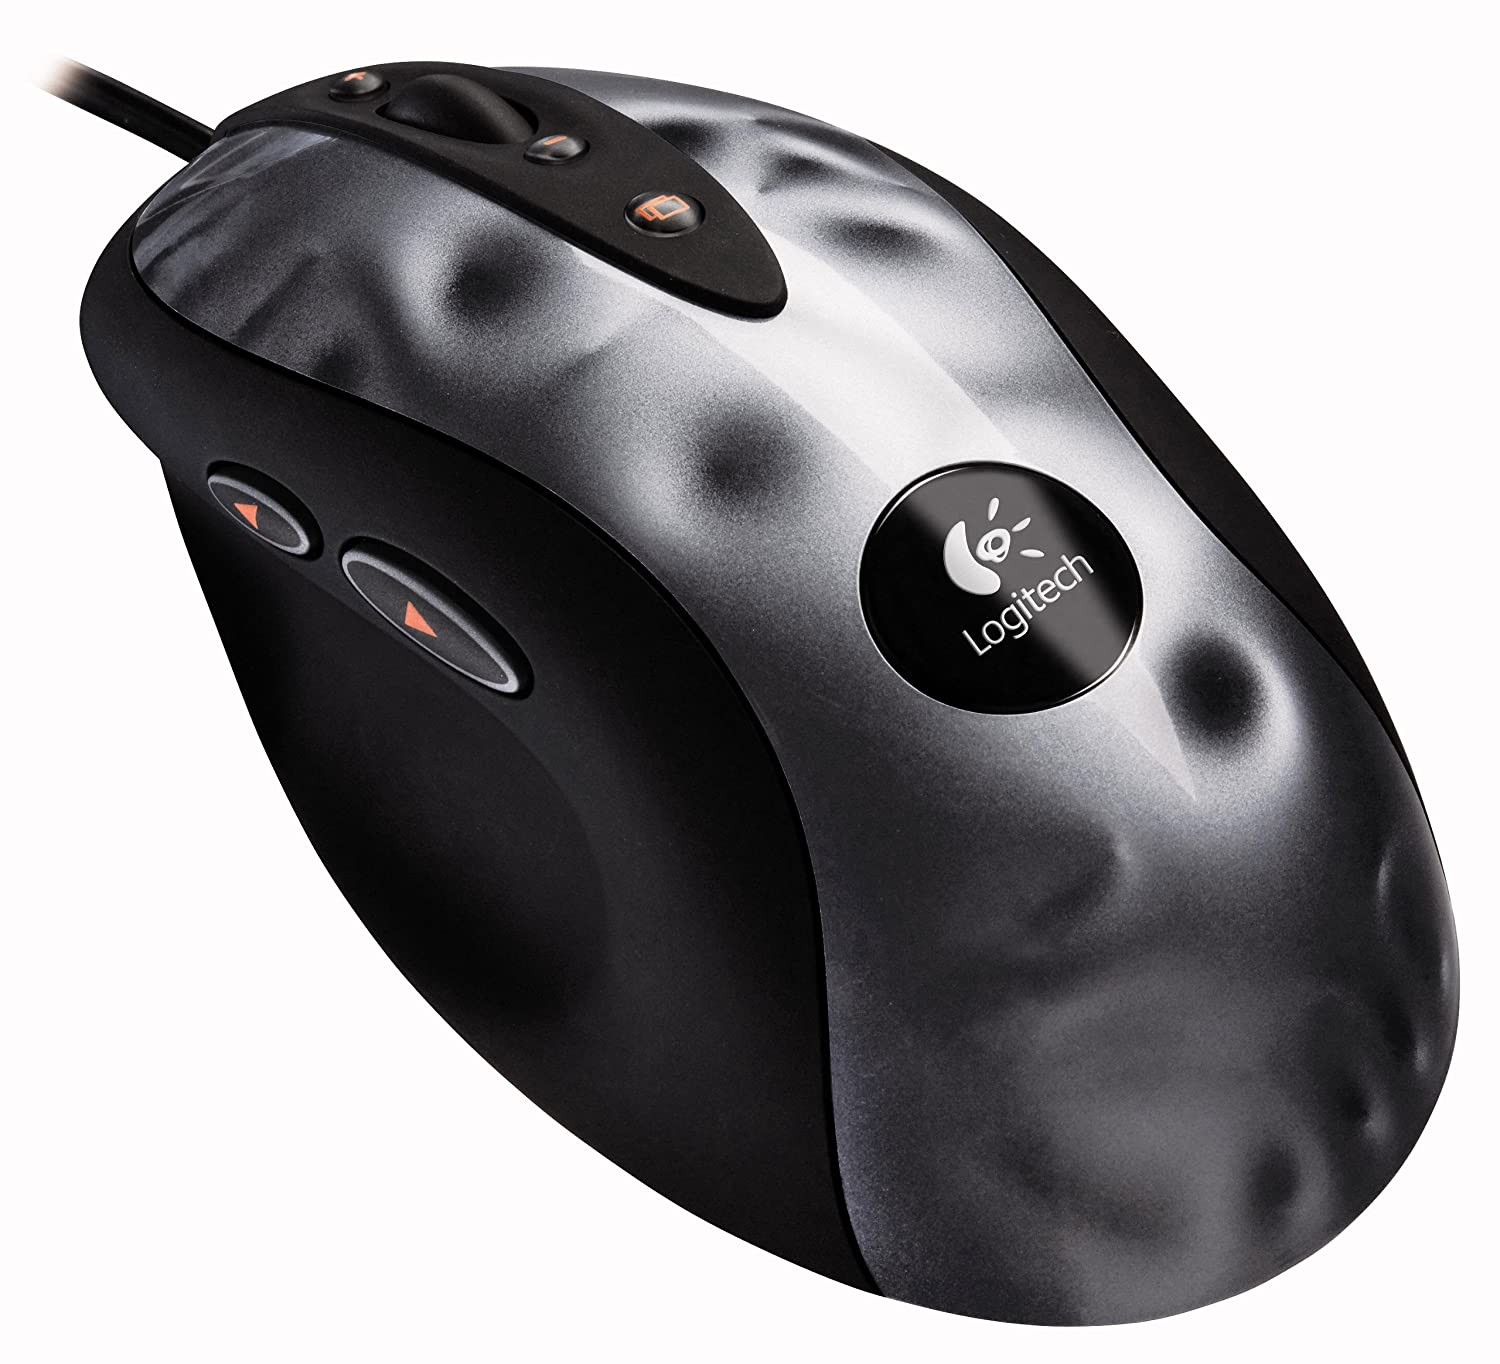 MOUSE MX518 DRIVER DOWNLOAD